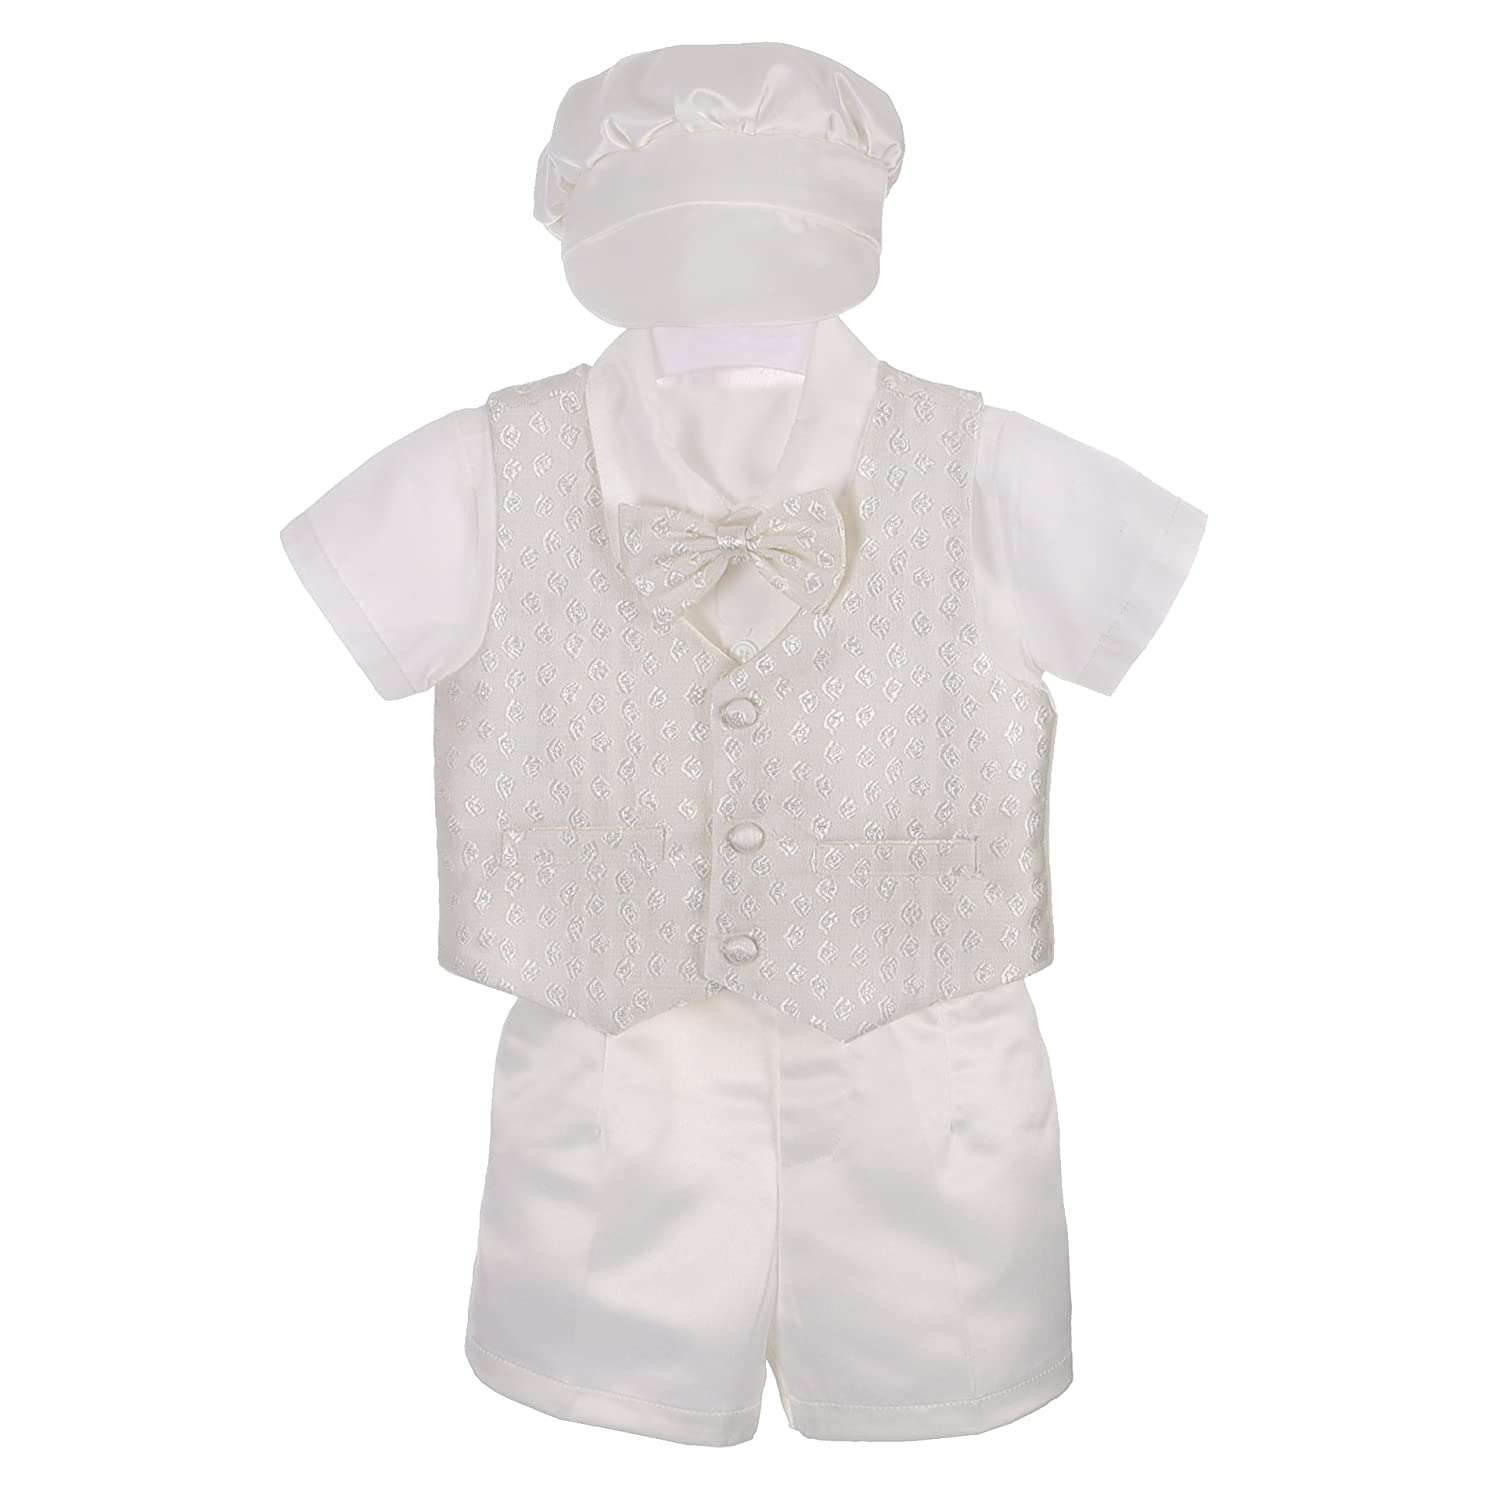 Lito Angels Baby Boys' 4 Pcs Baptism Christening Outfit Wedding Suit w/Bonnet Ivory